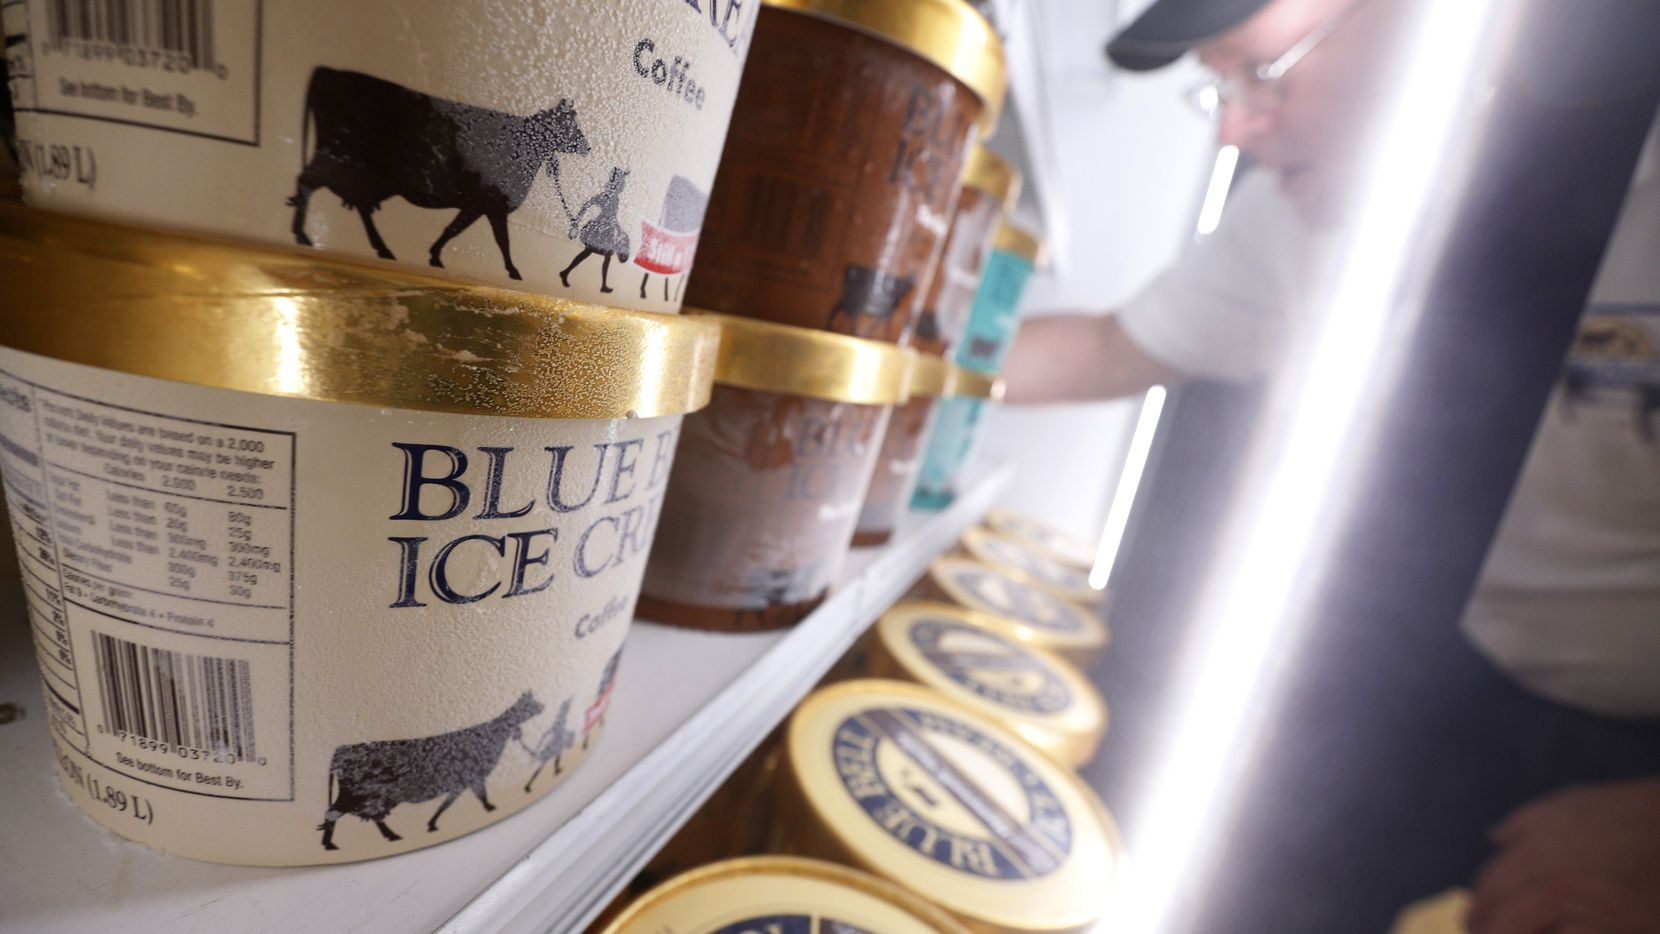 Robert Horton, route supervisor for Blue Bell Ice Cream, fills the refrigerated ice cream display at Tom Thumb in Dallas in 2016.